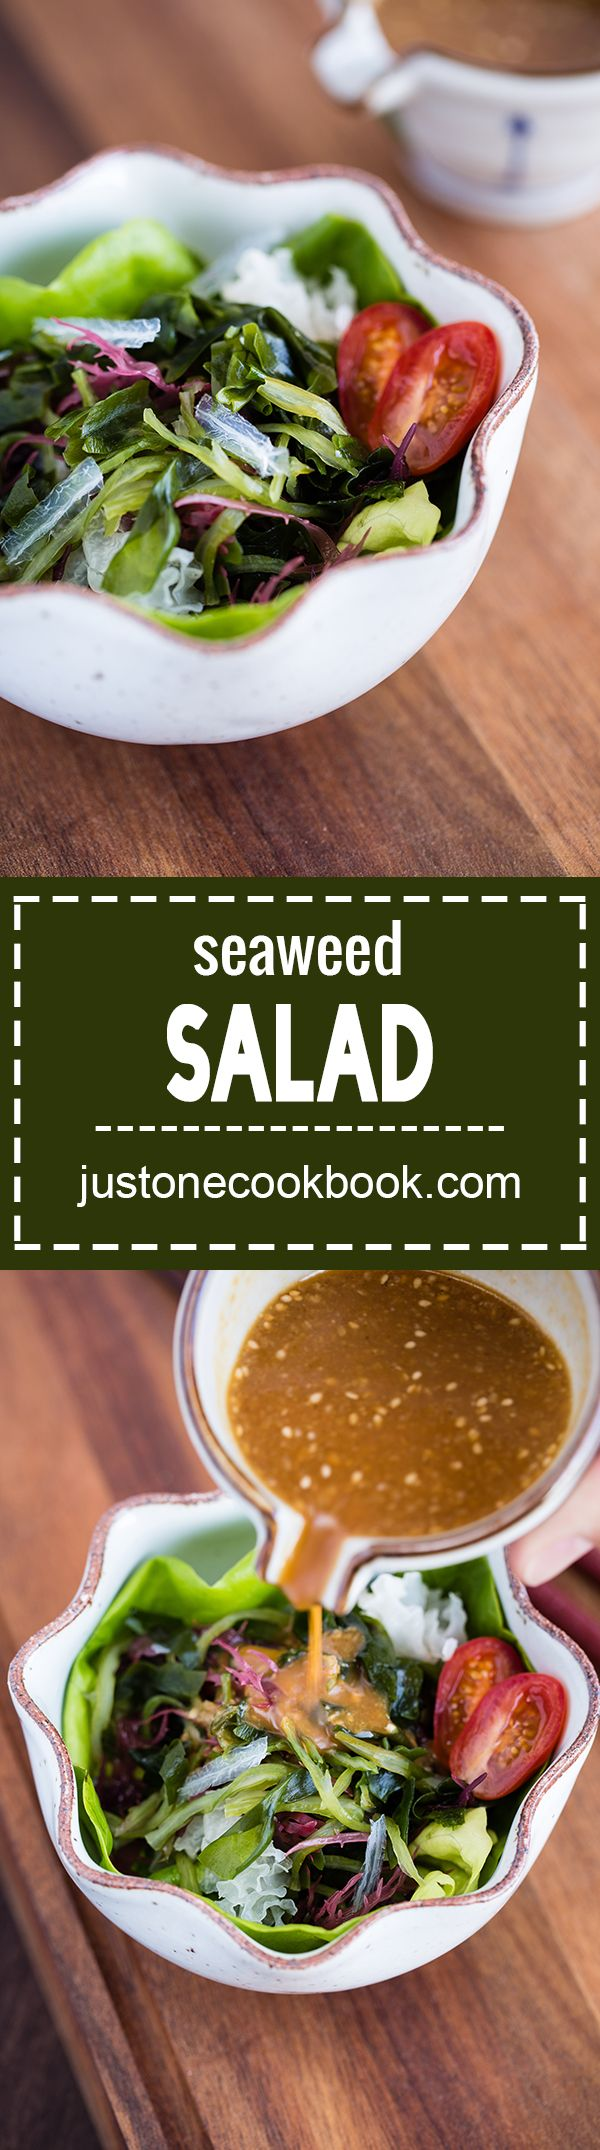 Seaweed Salad (海藻サラダ) | Easy Japanese Recipes at JustOneCookbook.com